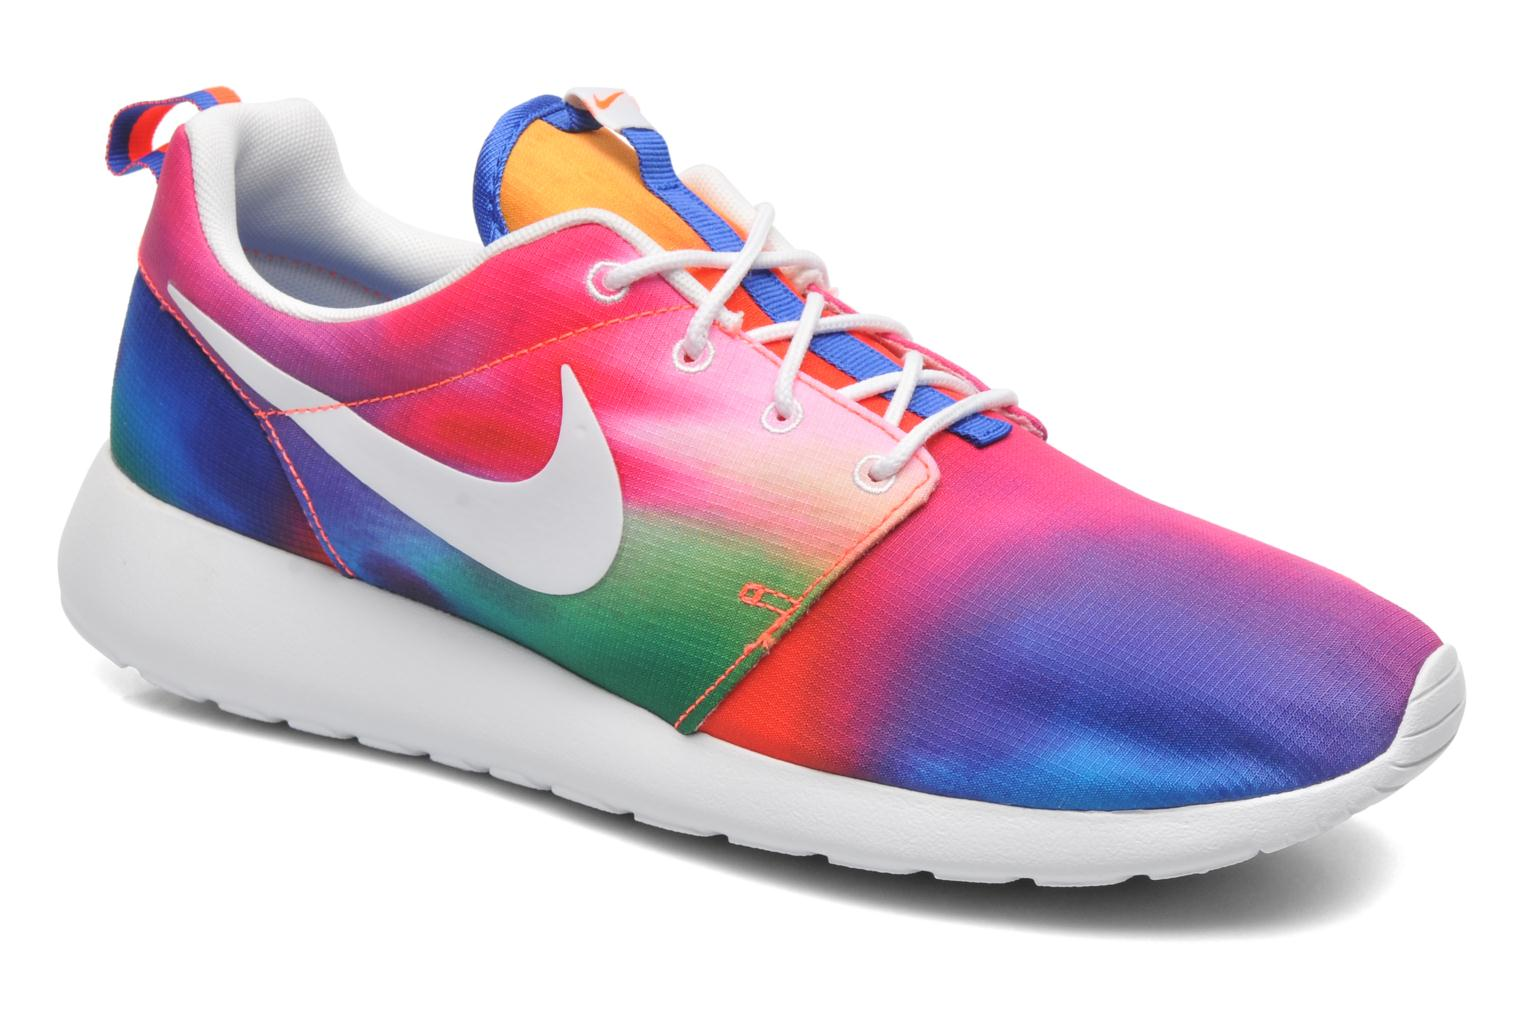 6af778bbc0b6d ... release date trainers nike nike roshe one print multicolor detailed  view pair view a7f8e f24f0